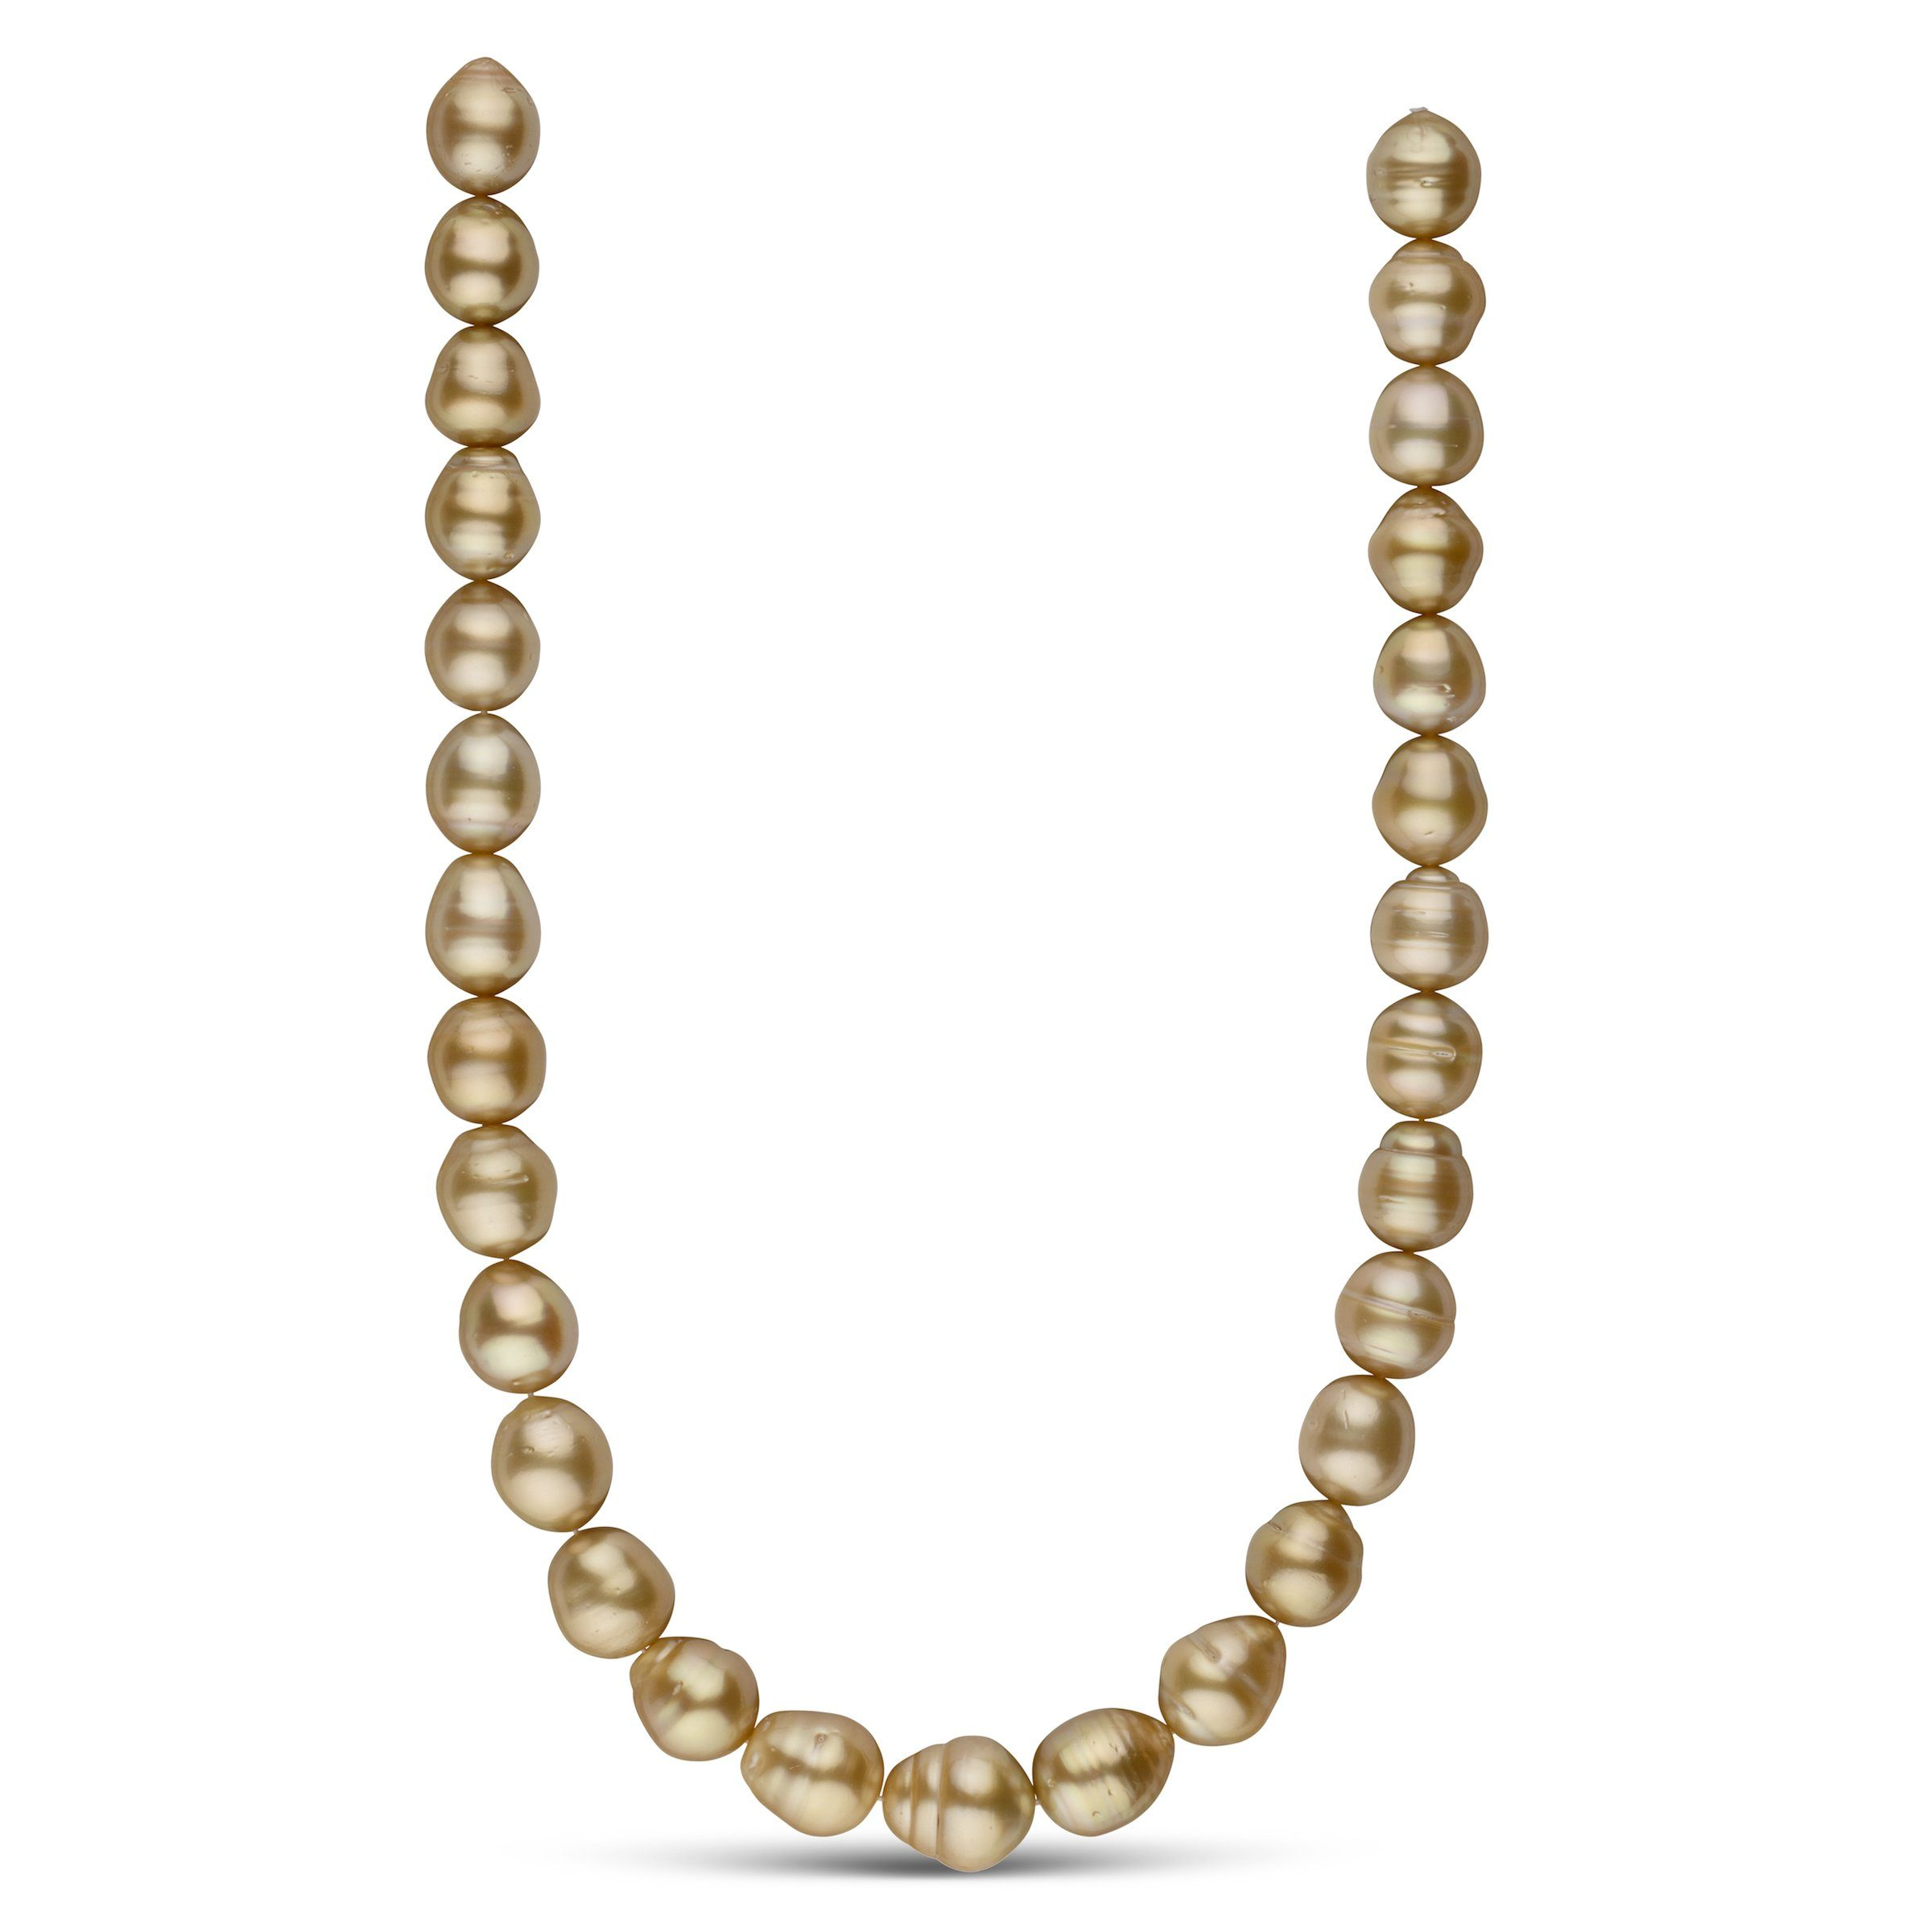 12.0-14.2 mm AA+ Golden South Sea Baroque Necklace